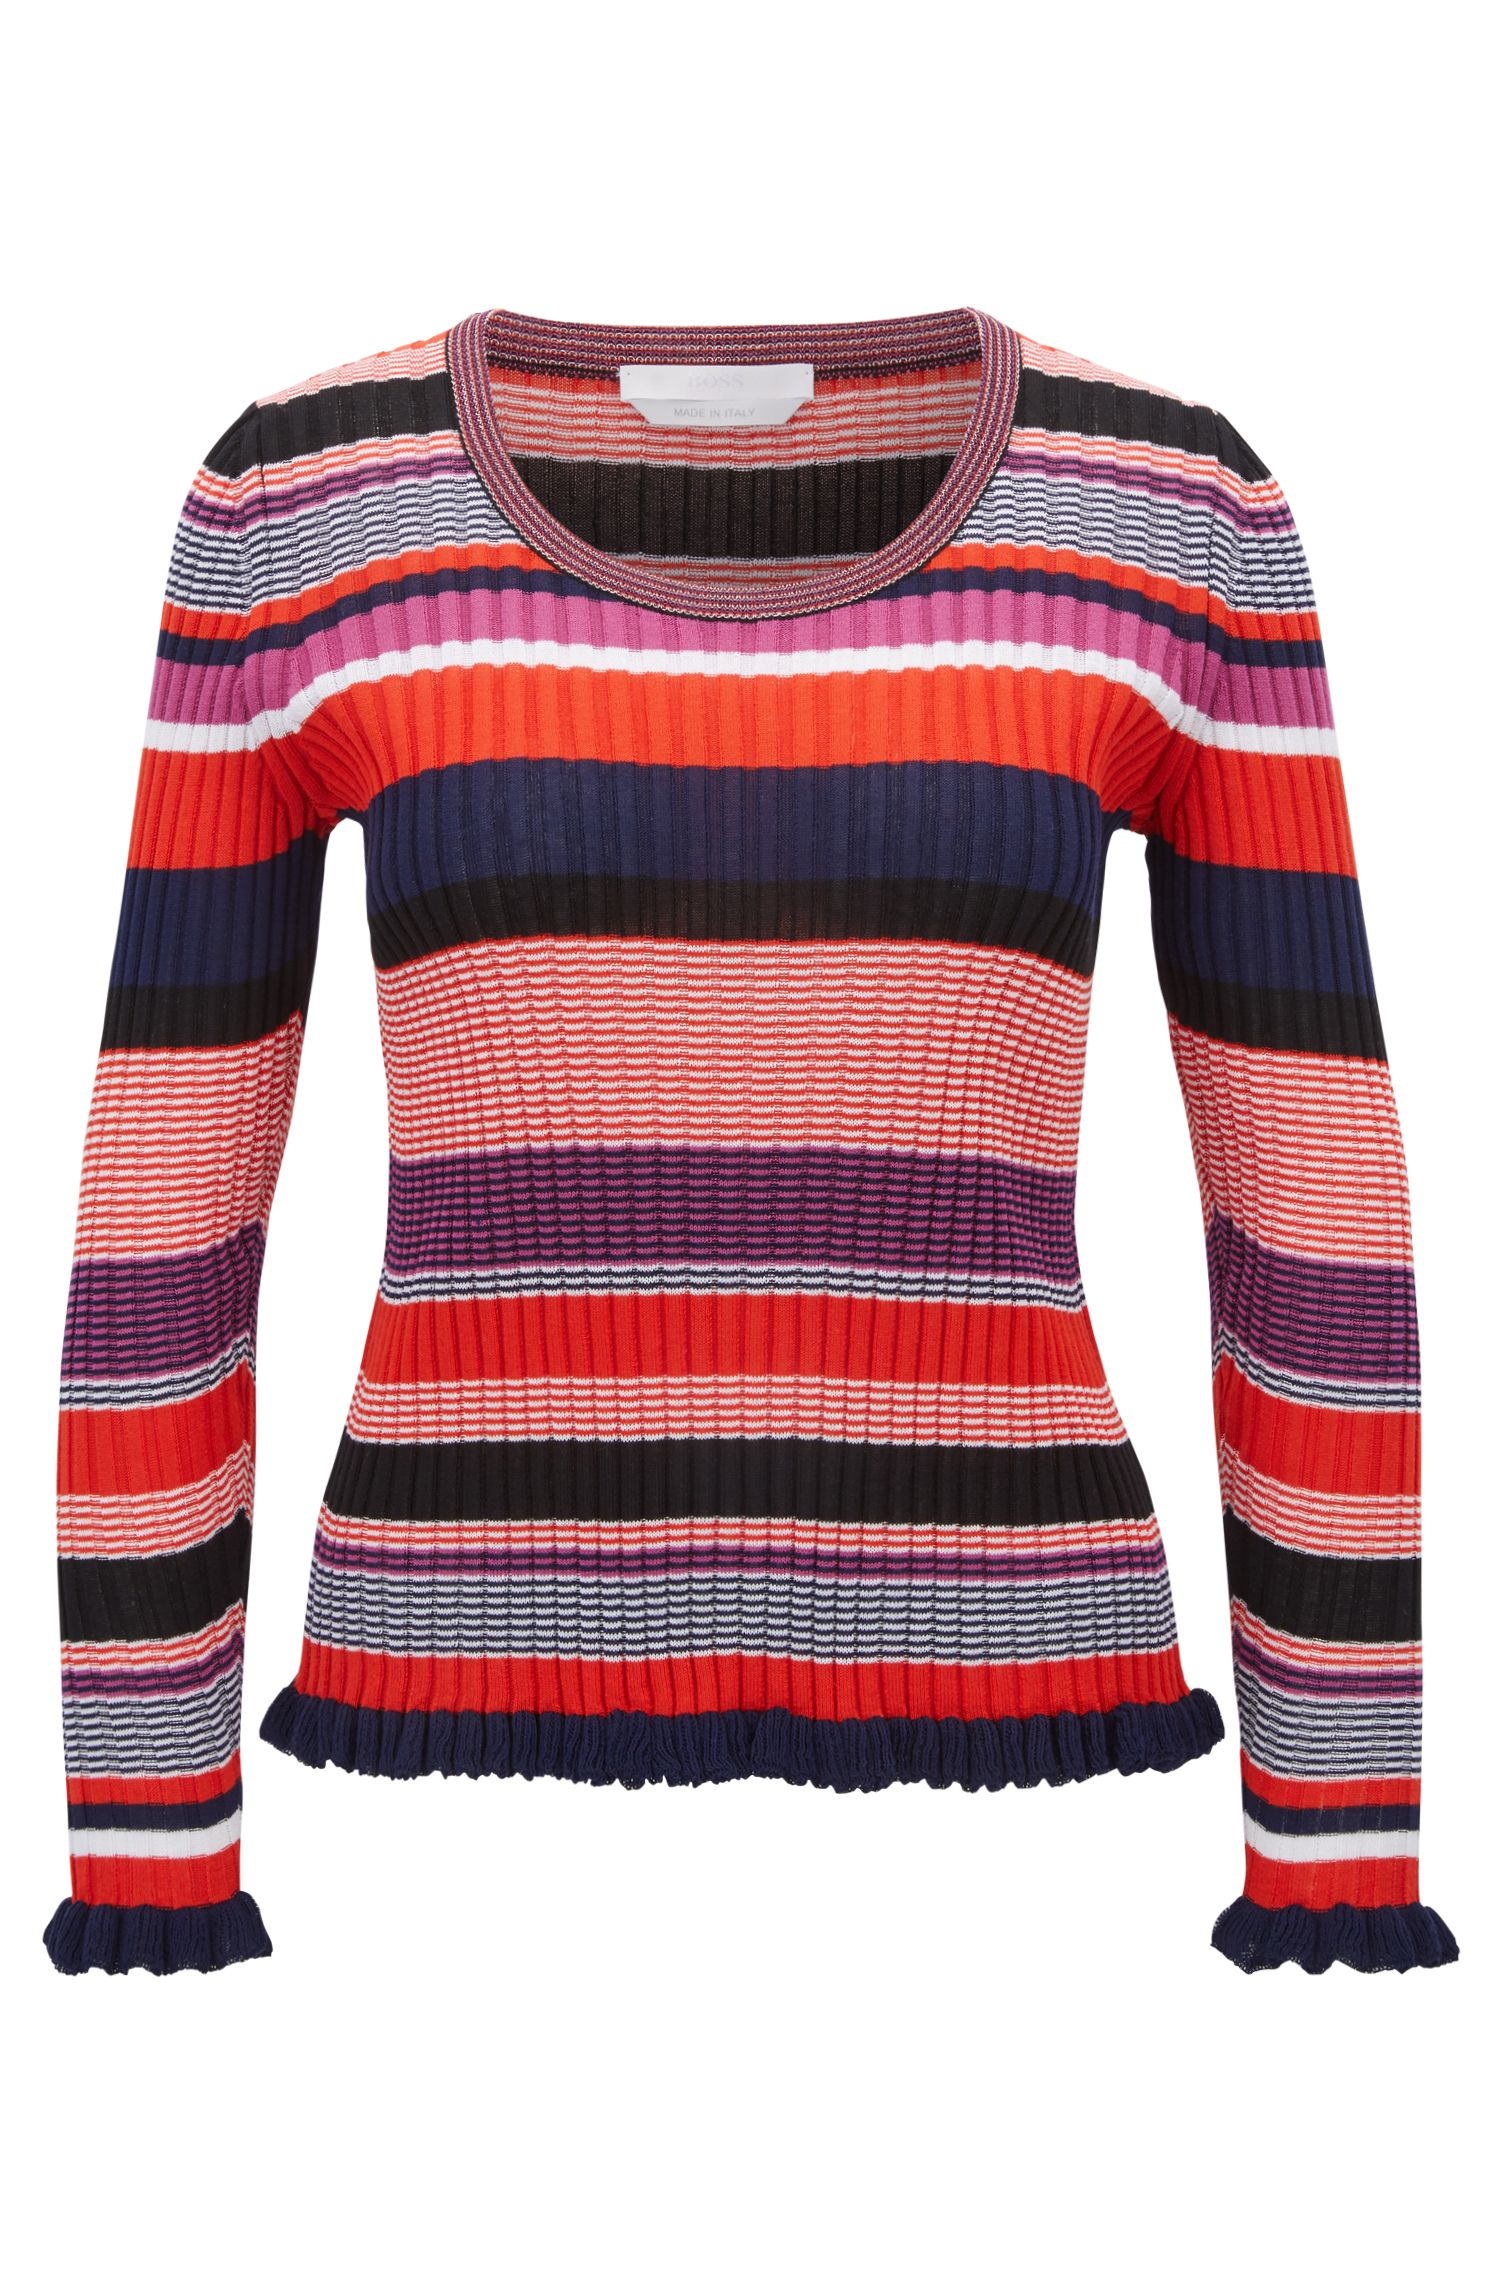 Striped sweater in a cotton blend